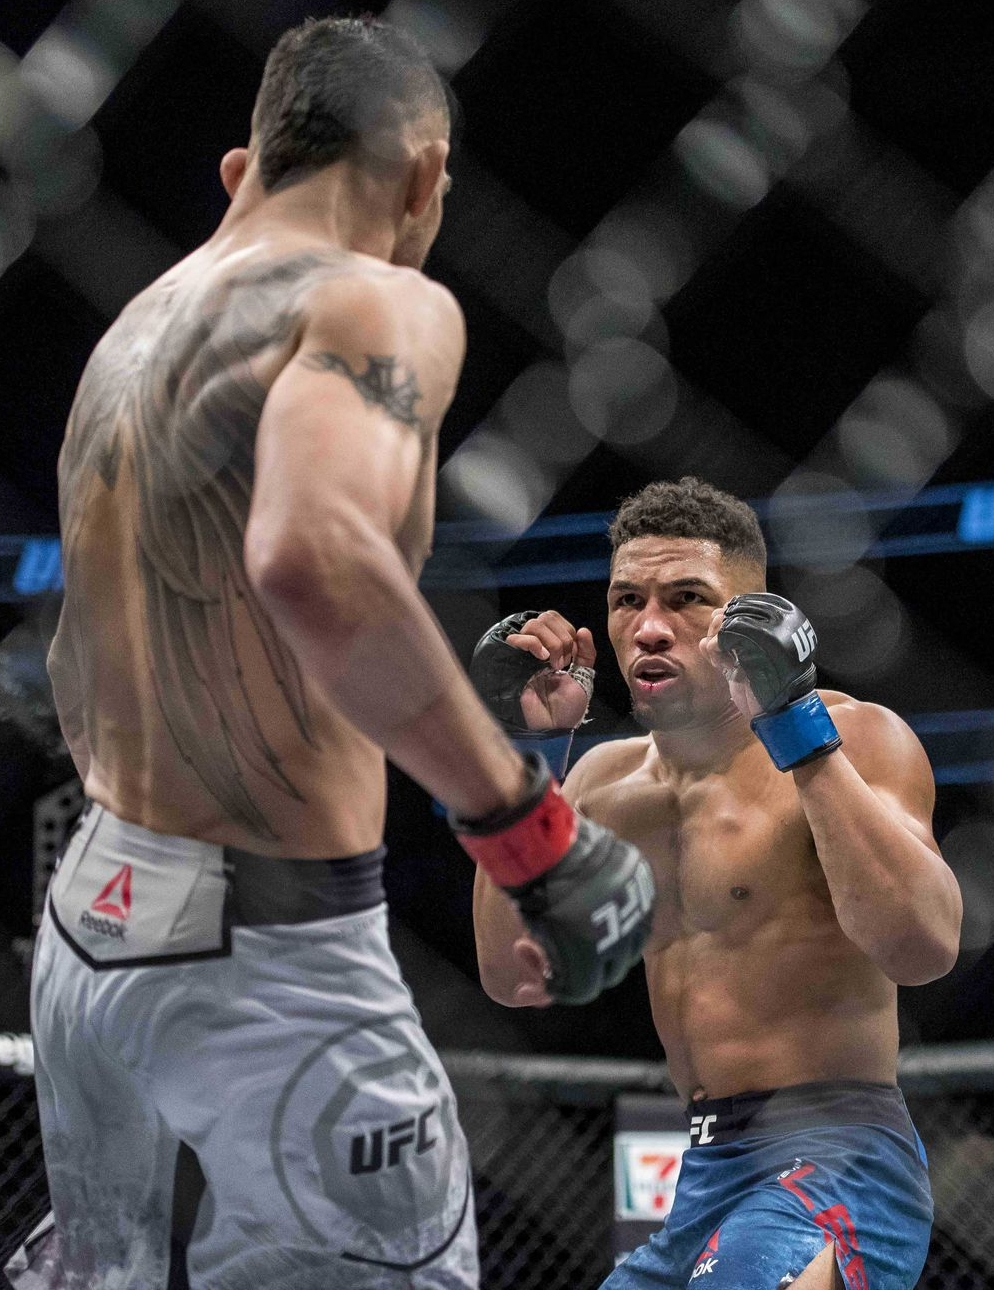 video review : Tony Ferguson versus Kevin Lee at UFC 216